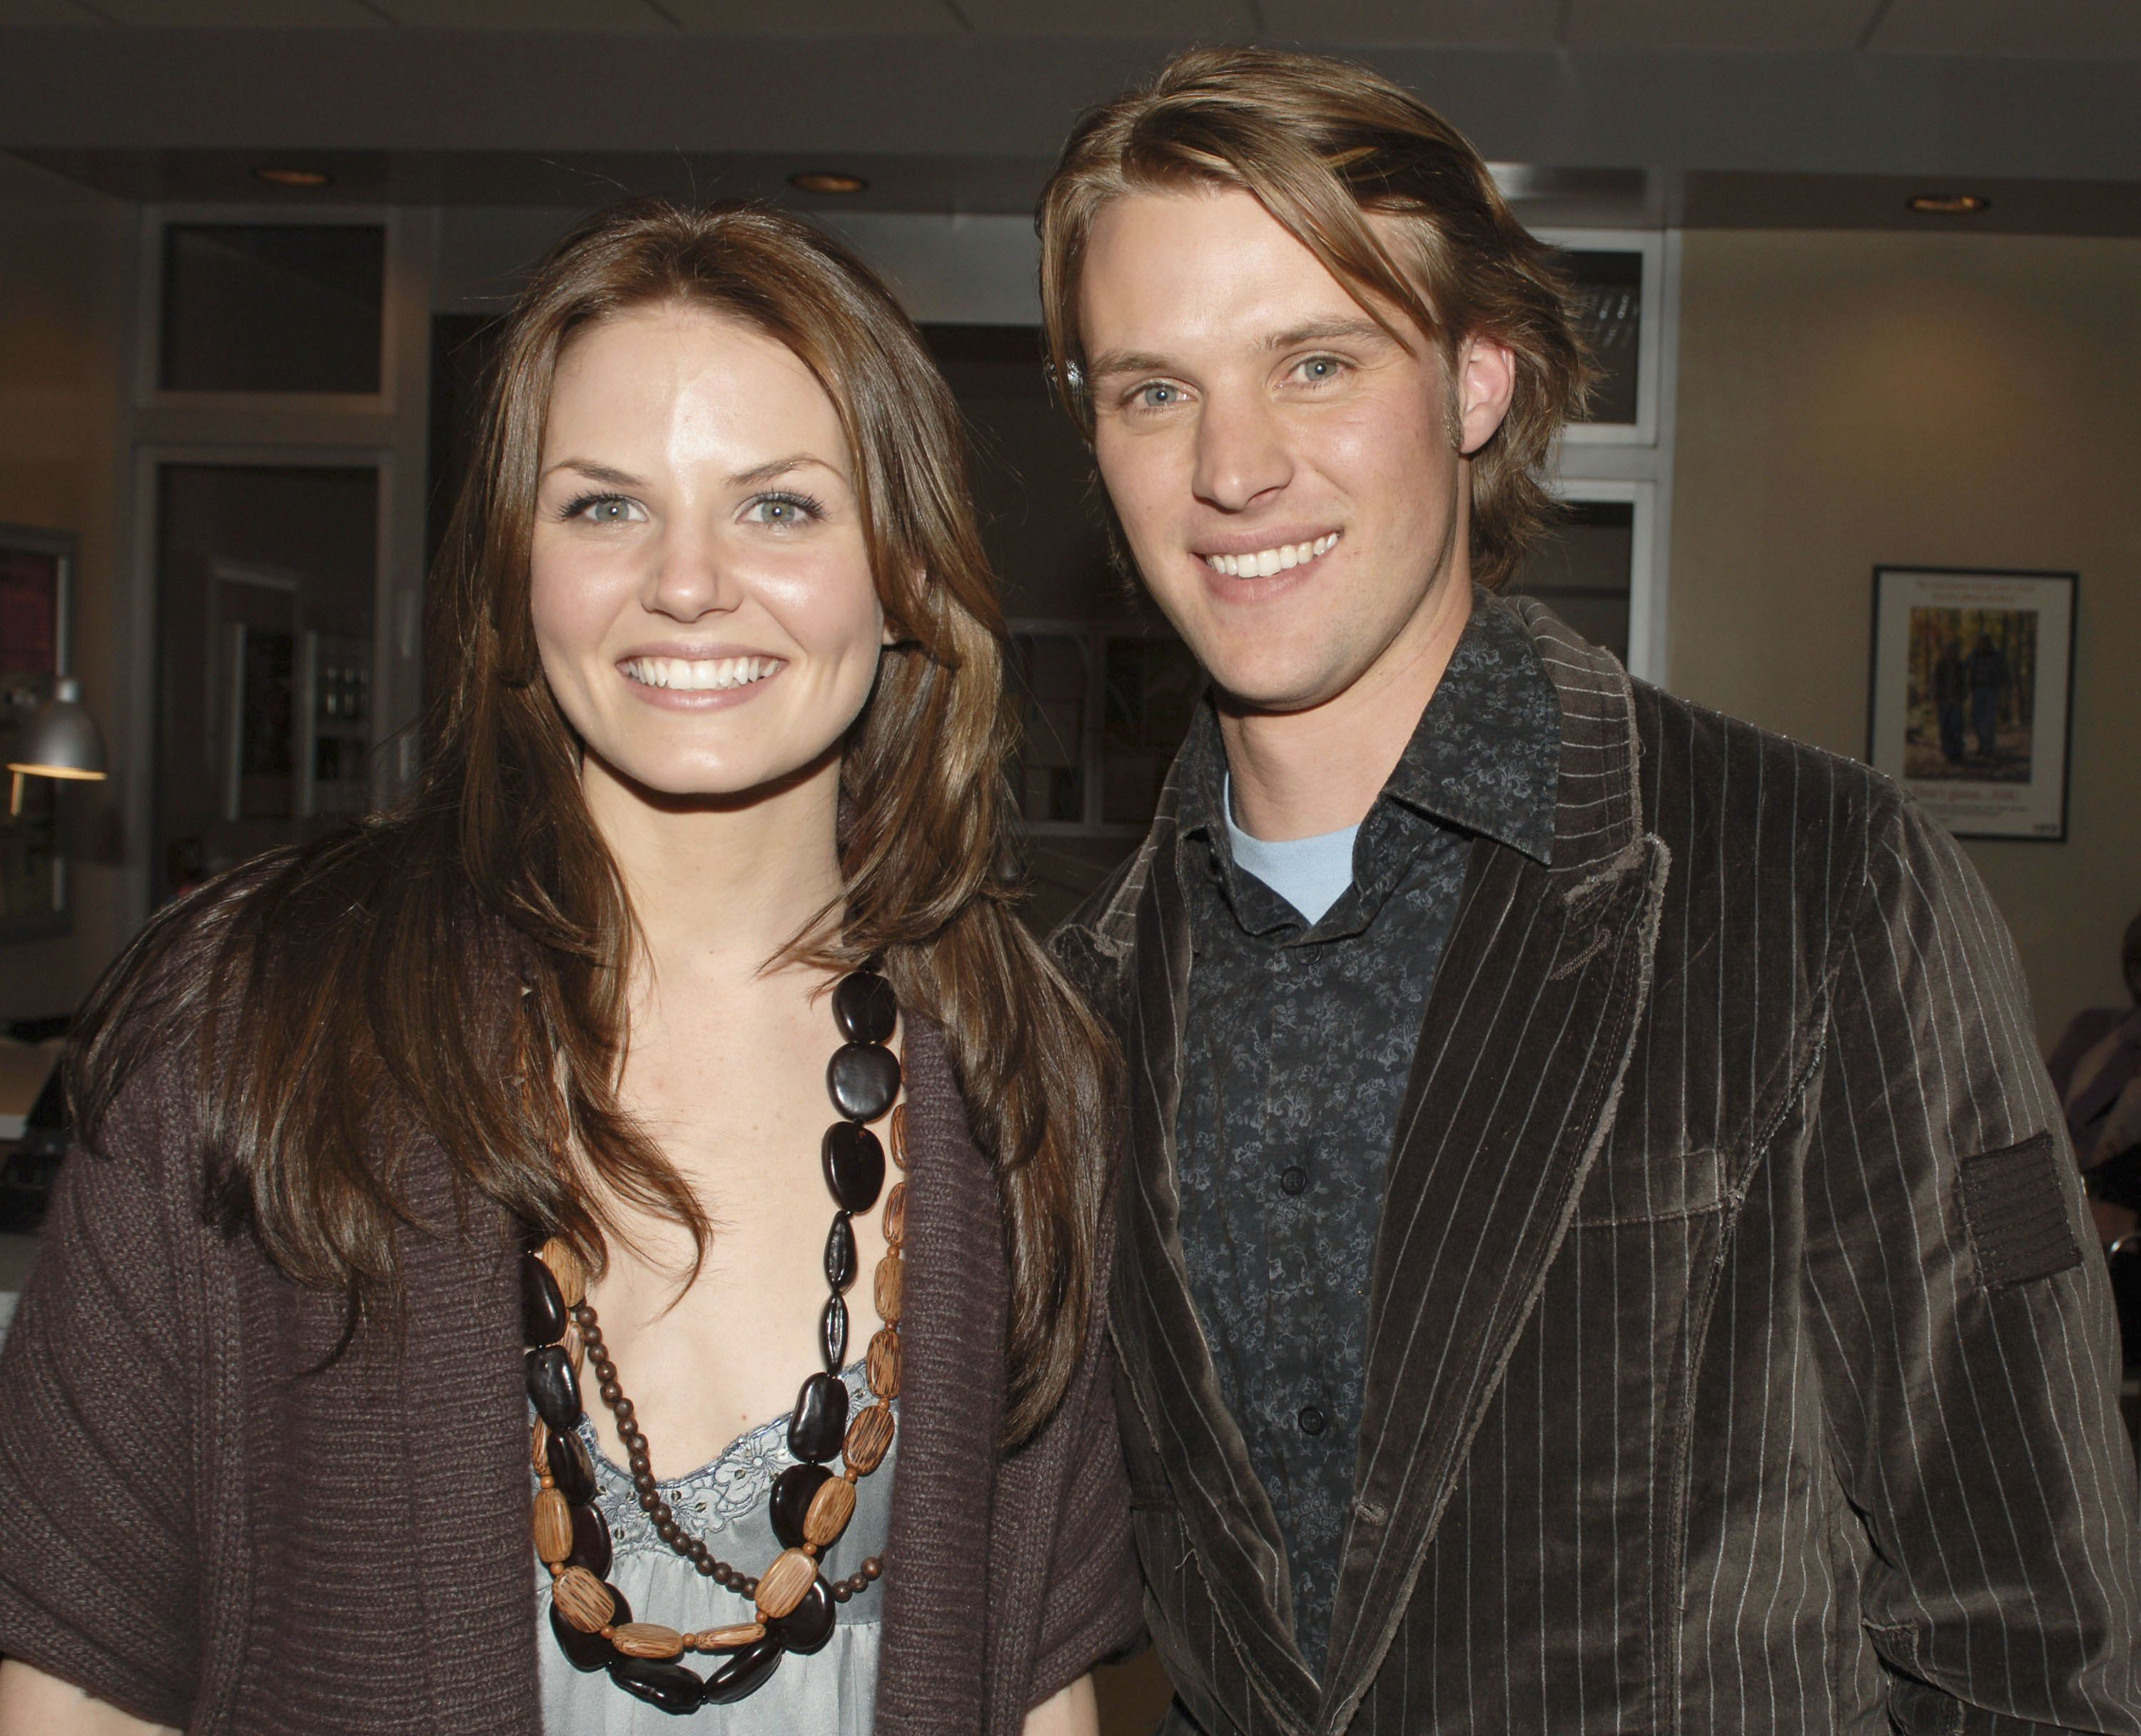 Actors Jennifer Morrison and Jesse Spencer at the FOX 2007 Programming presentation at the Wollman Rink in Central Park on May17, 2007   Photo: Getty Images